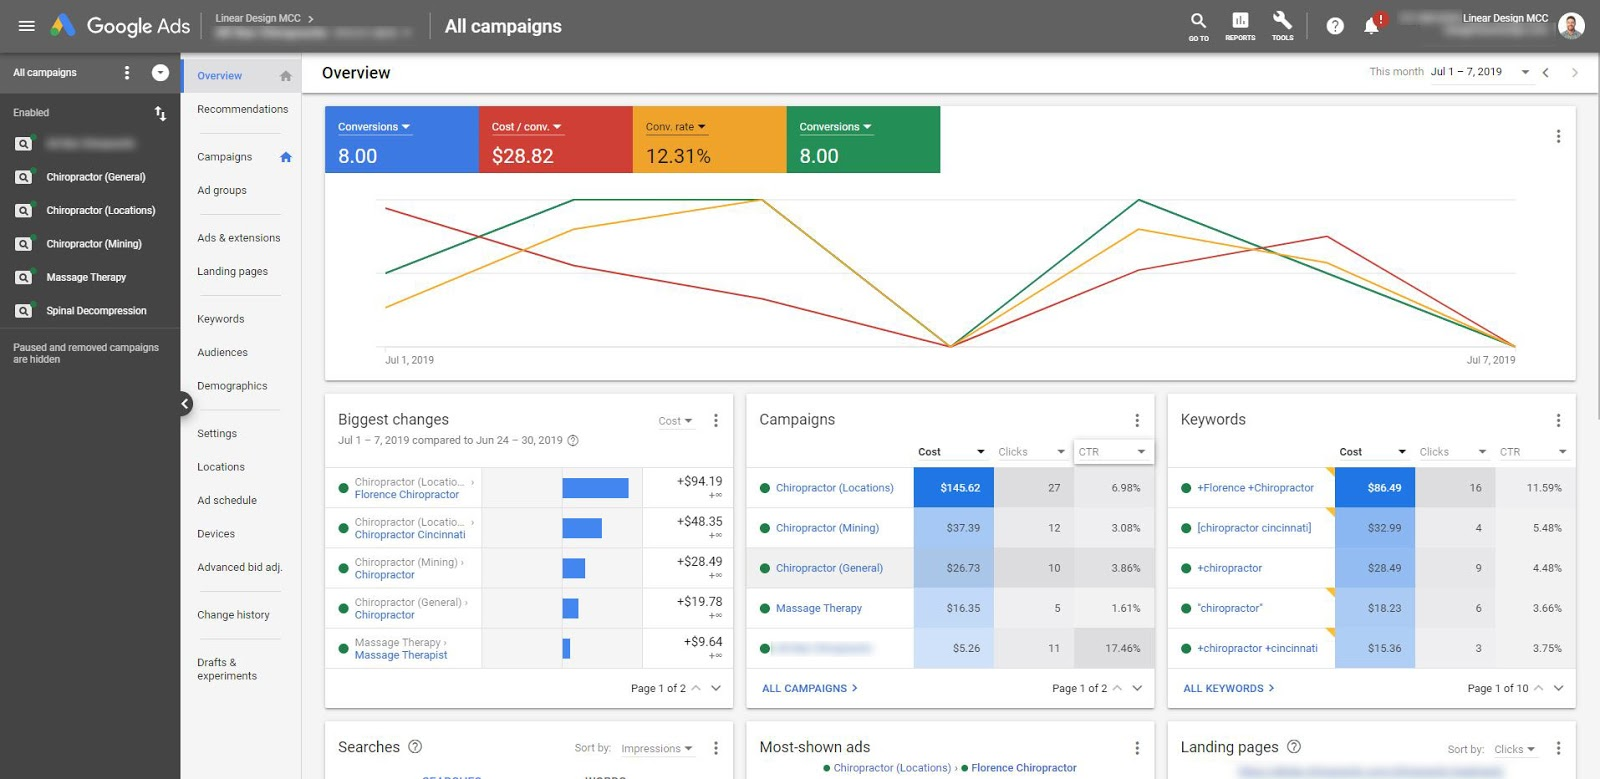 Google Ads Guide Overview Tab